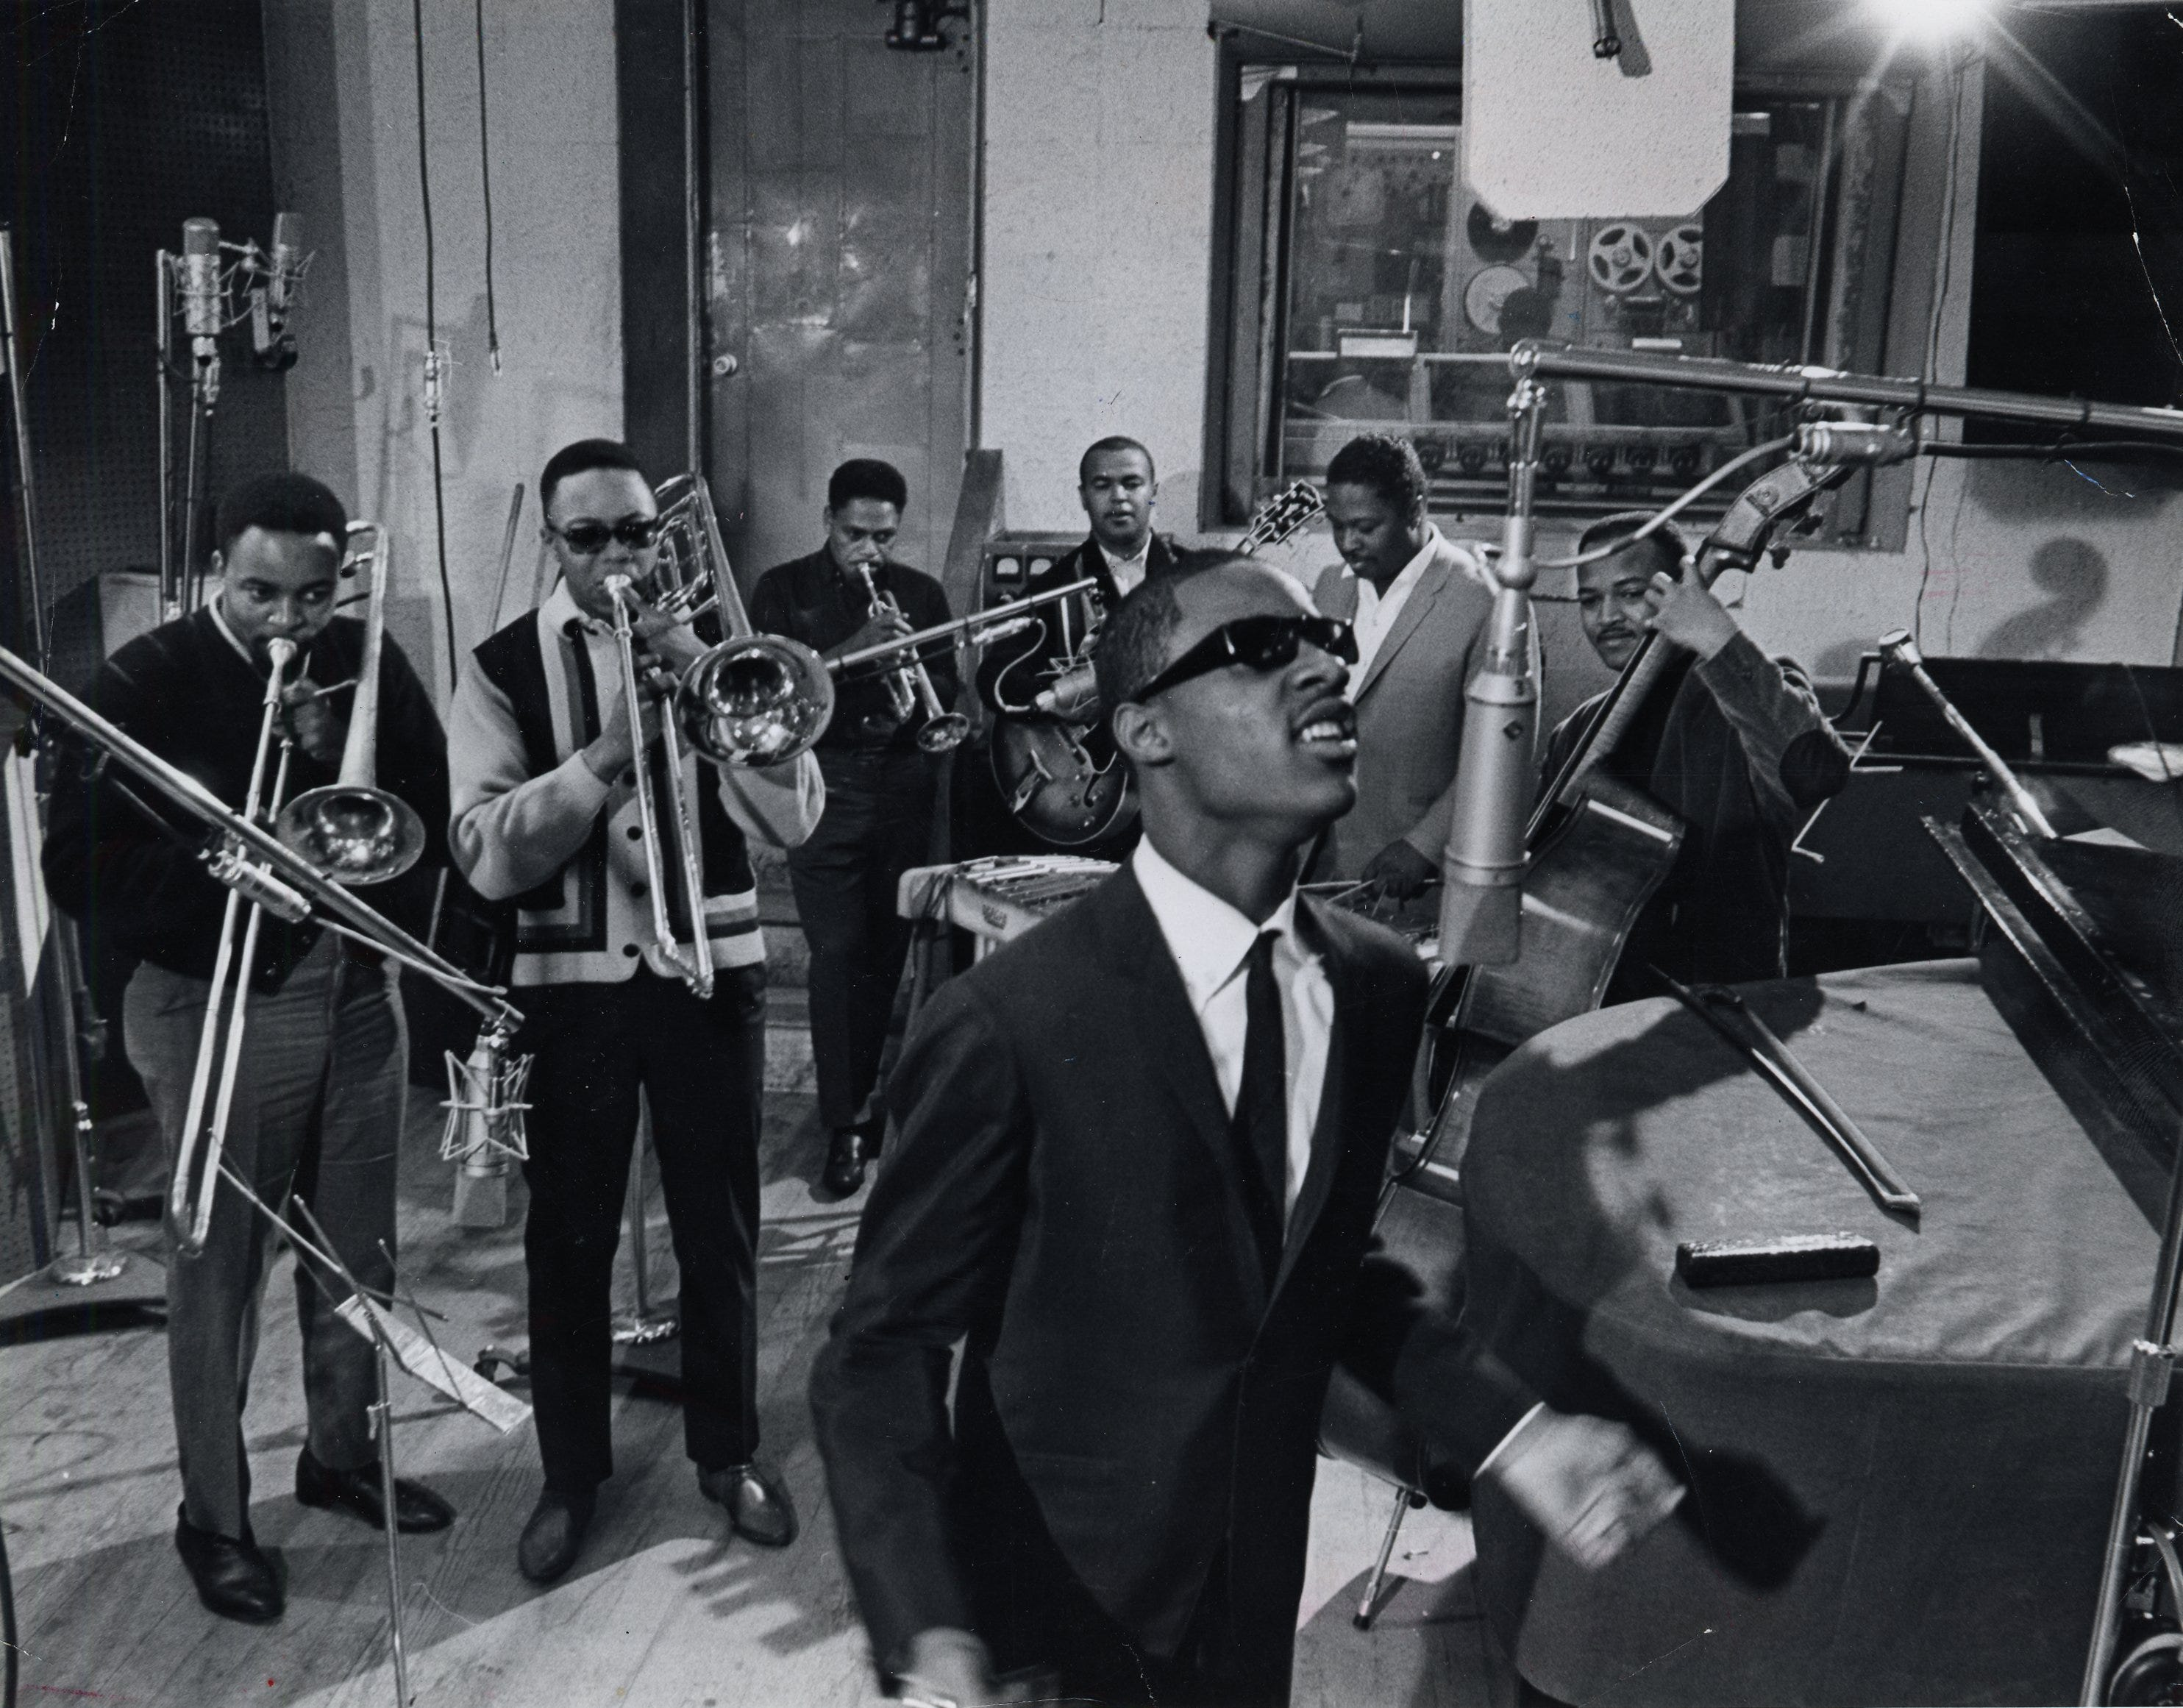 Stevie Wonder and members of the Funk Brothers, including Paul Riser (second from left), in Motown's Studio A in 1965.